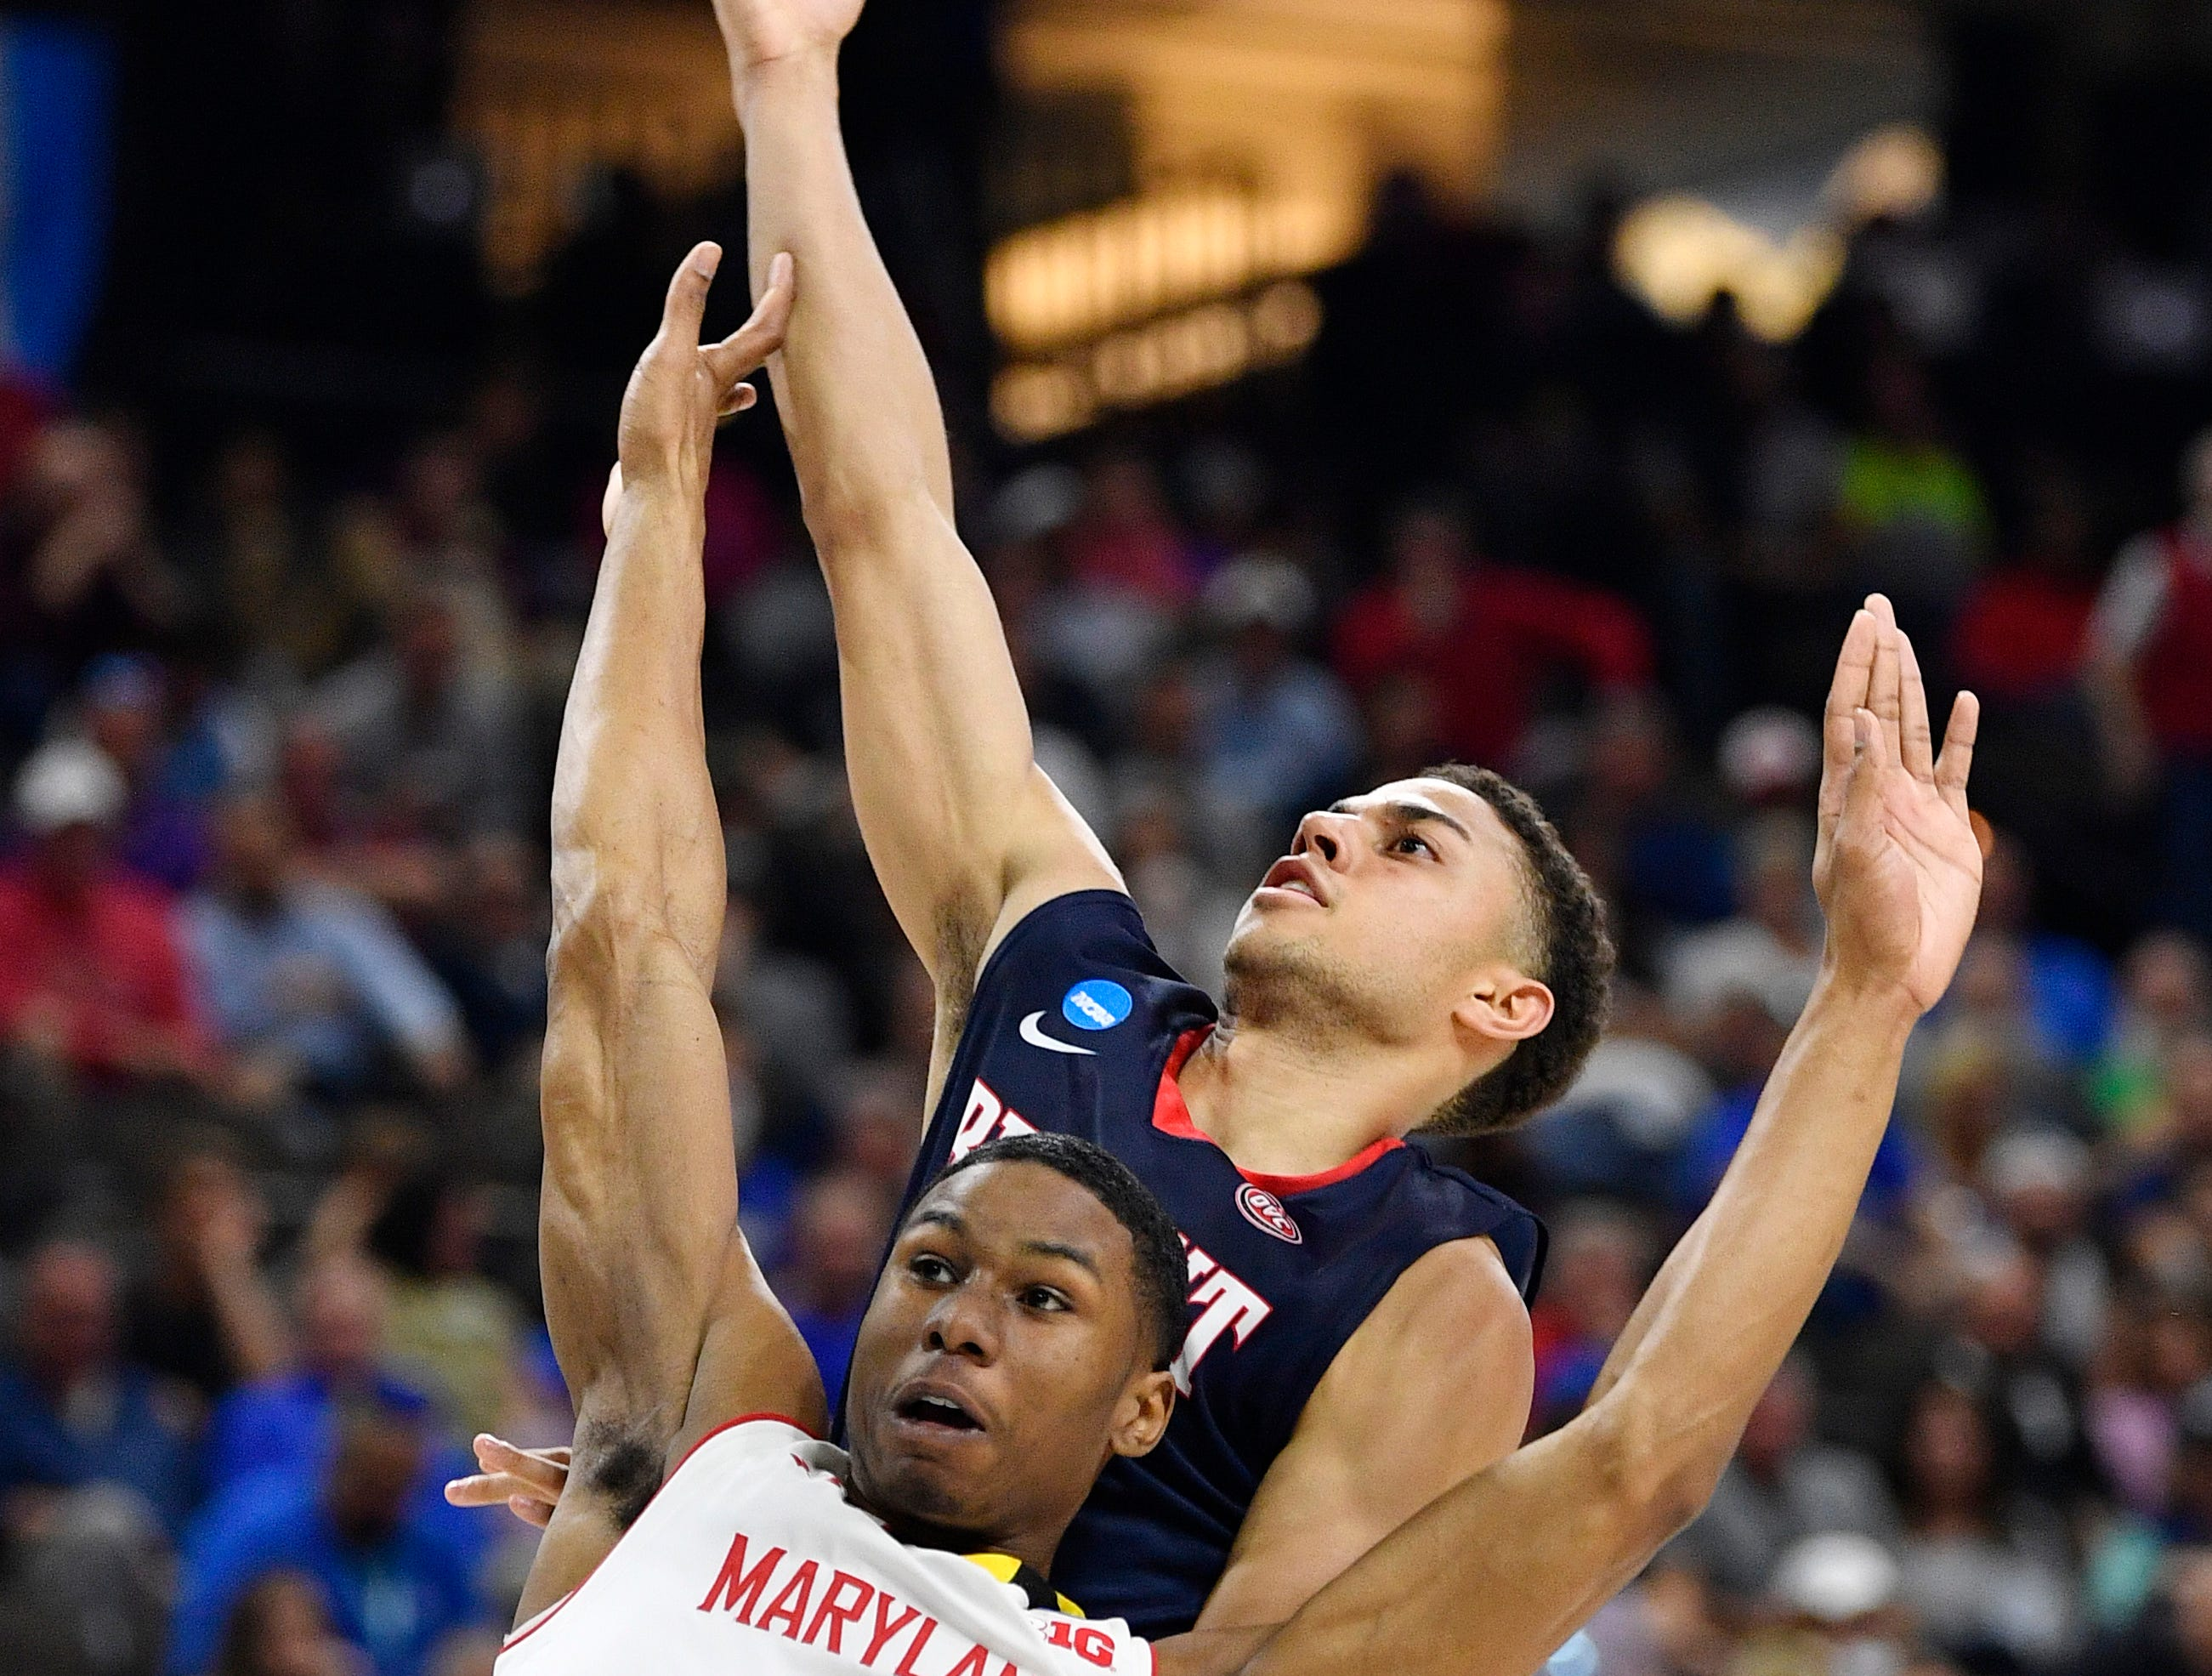 Belmont guard Kevin McClain (11) shoots over Maryland guard Serrel Smith Jr. (10) during the first half of the first-round NCAA college basketball tournament game at VyStar Veterans Memorial Arena in Jacksonville, Fla., Thursday, March 21, 2019.